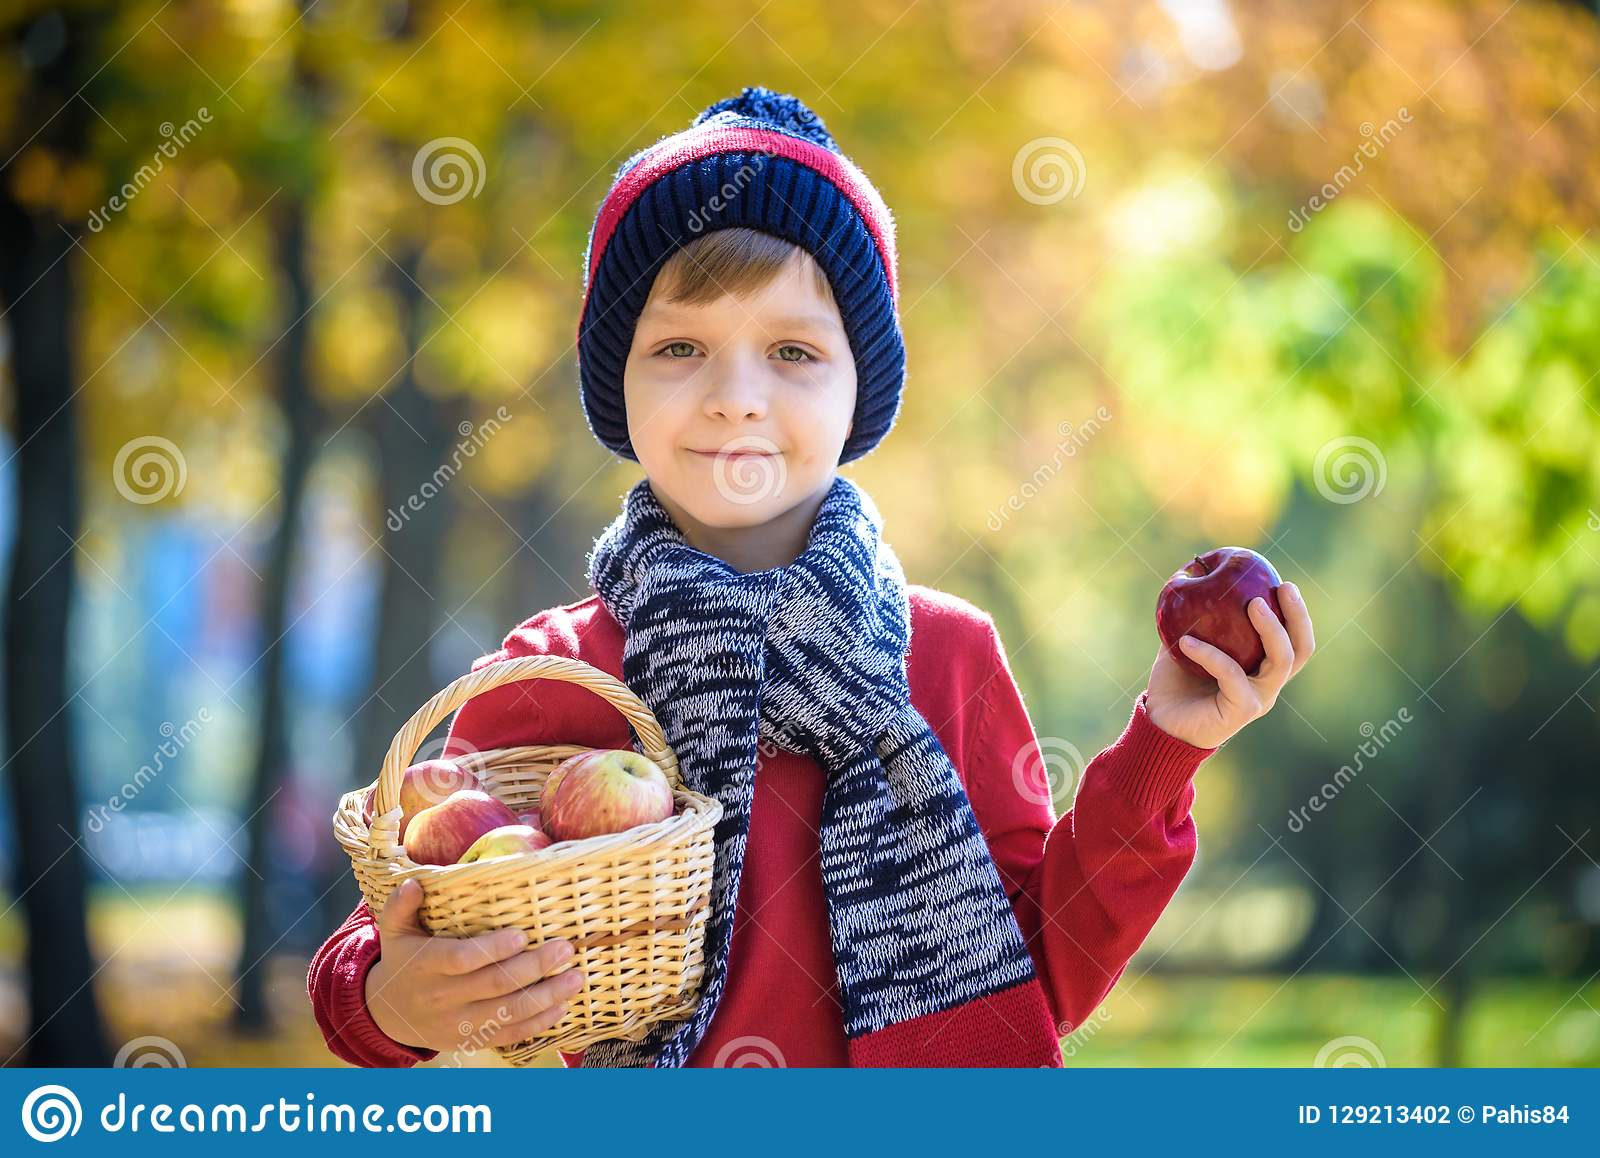 Child picking apples in autumn. Little baby boy playing in apple tree orchard. Kids pick fruit in a basket. Toddler eating fruits